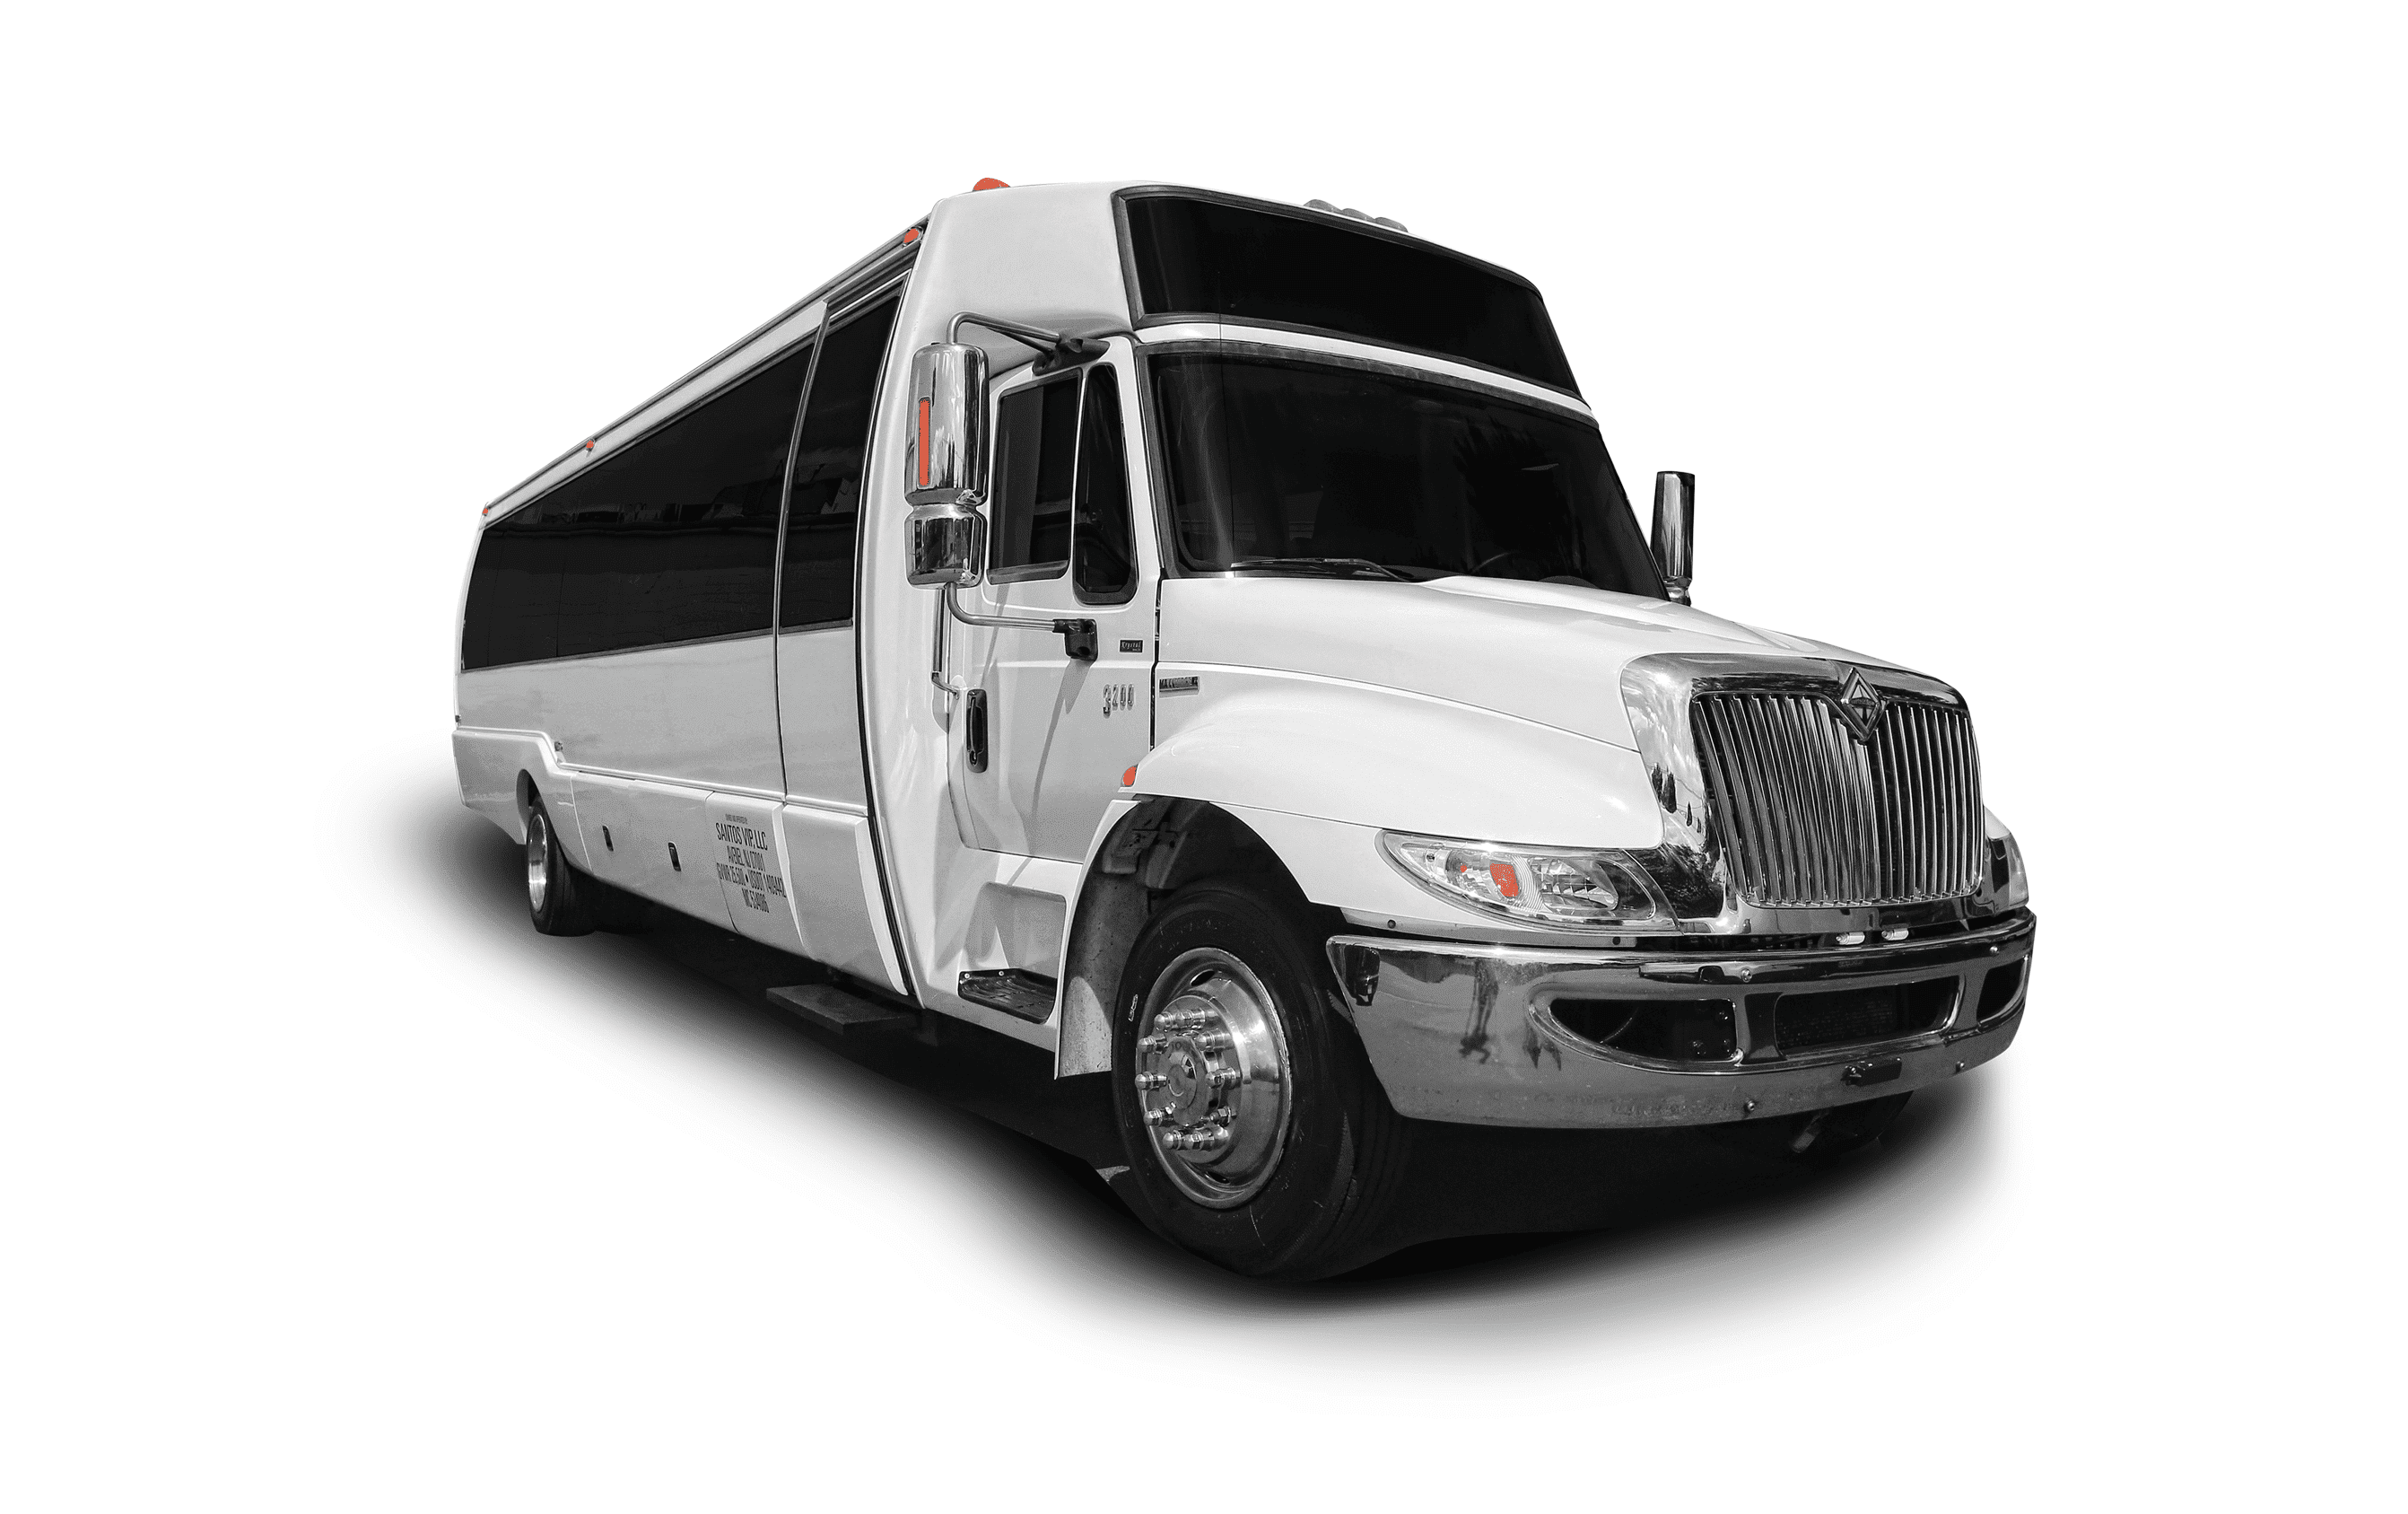 28 passenger VIP Limo Coach Party Bus rental for theater / concert event in NJ - NY